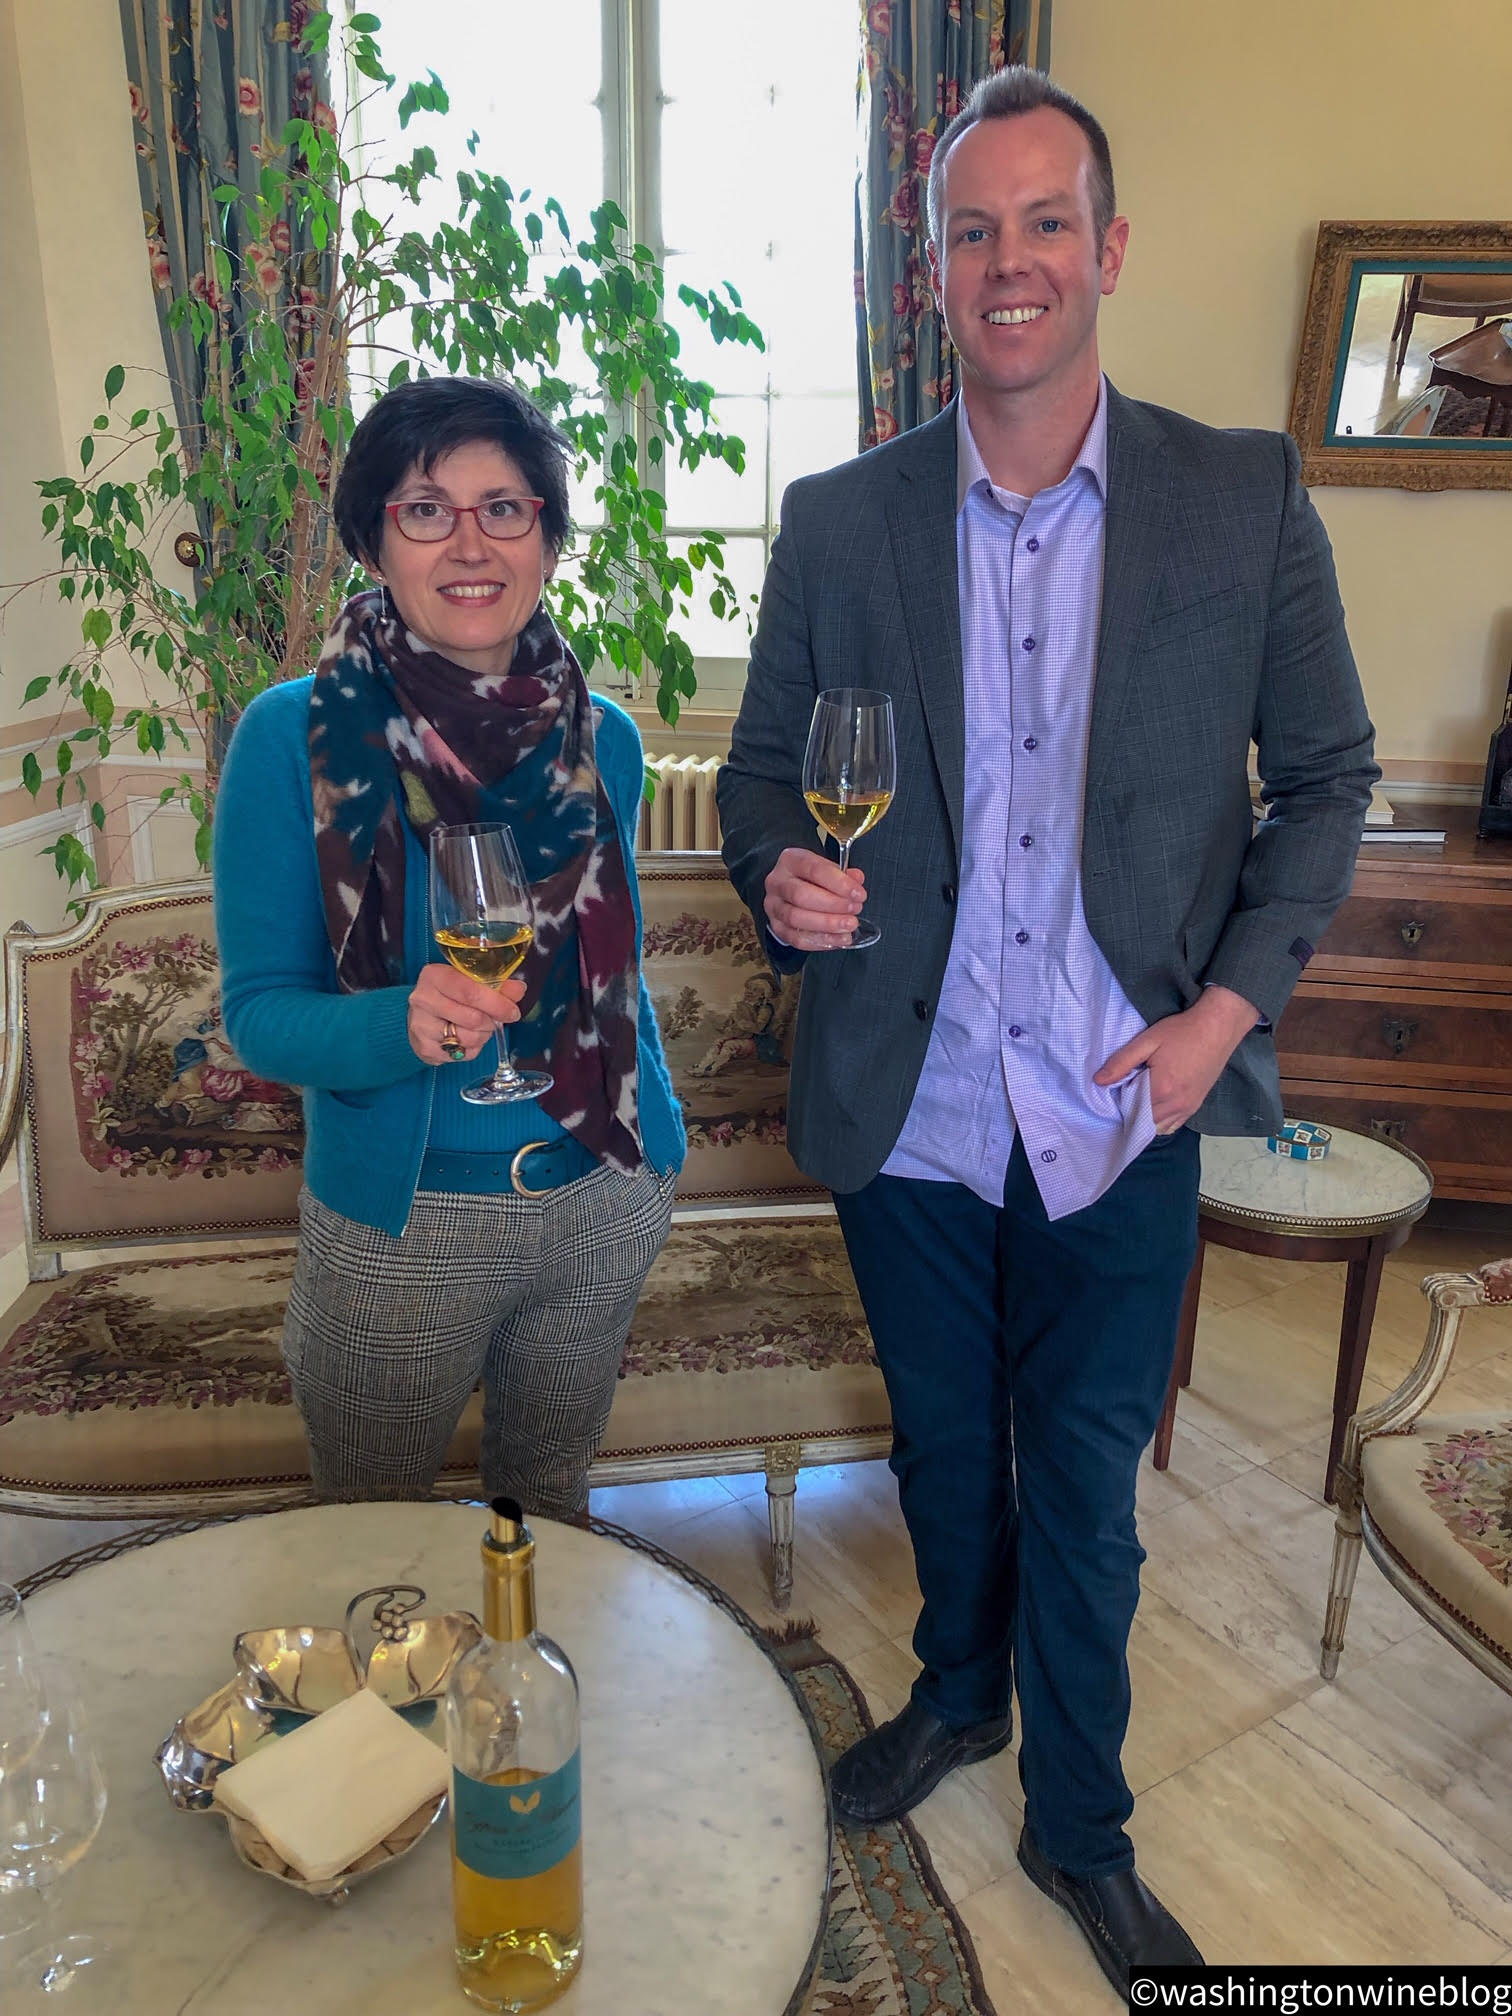 It was a magical day visiting one of the great wineries of the world, Chateau Climens and the talented Berenice Lurton.